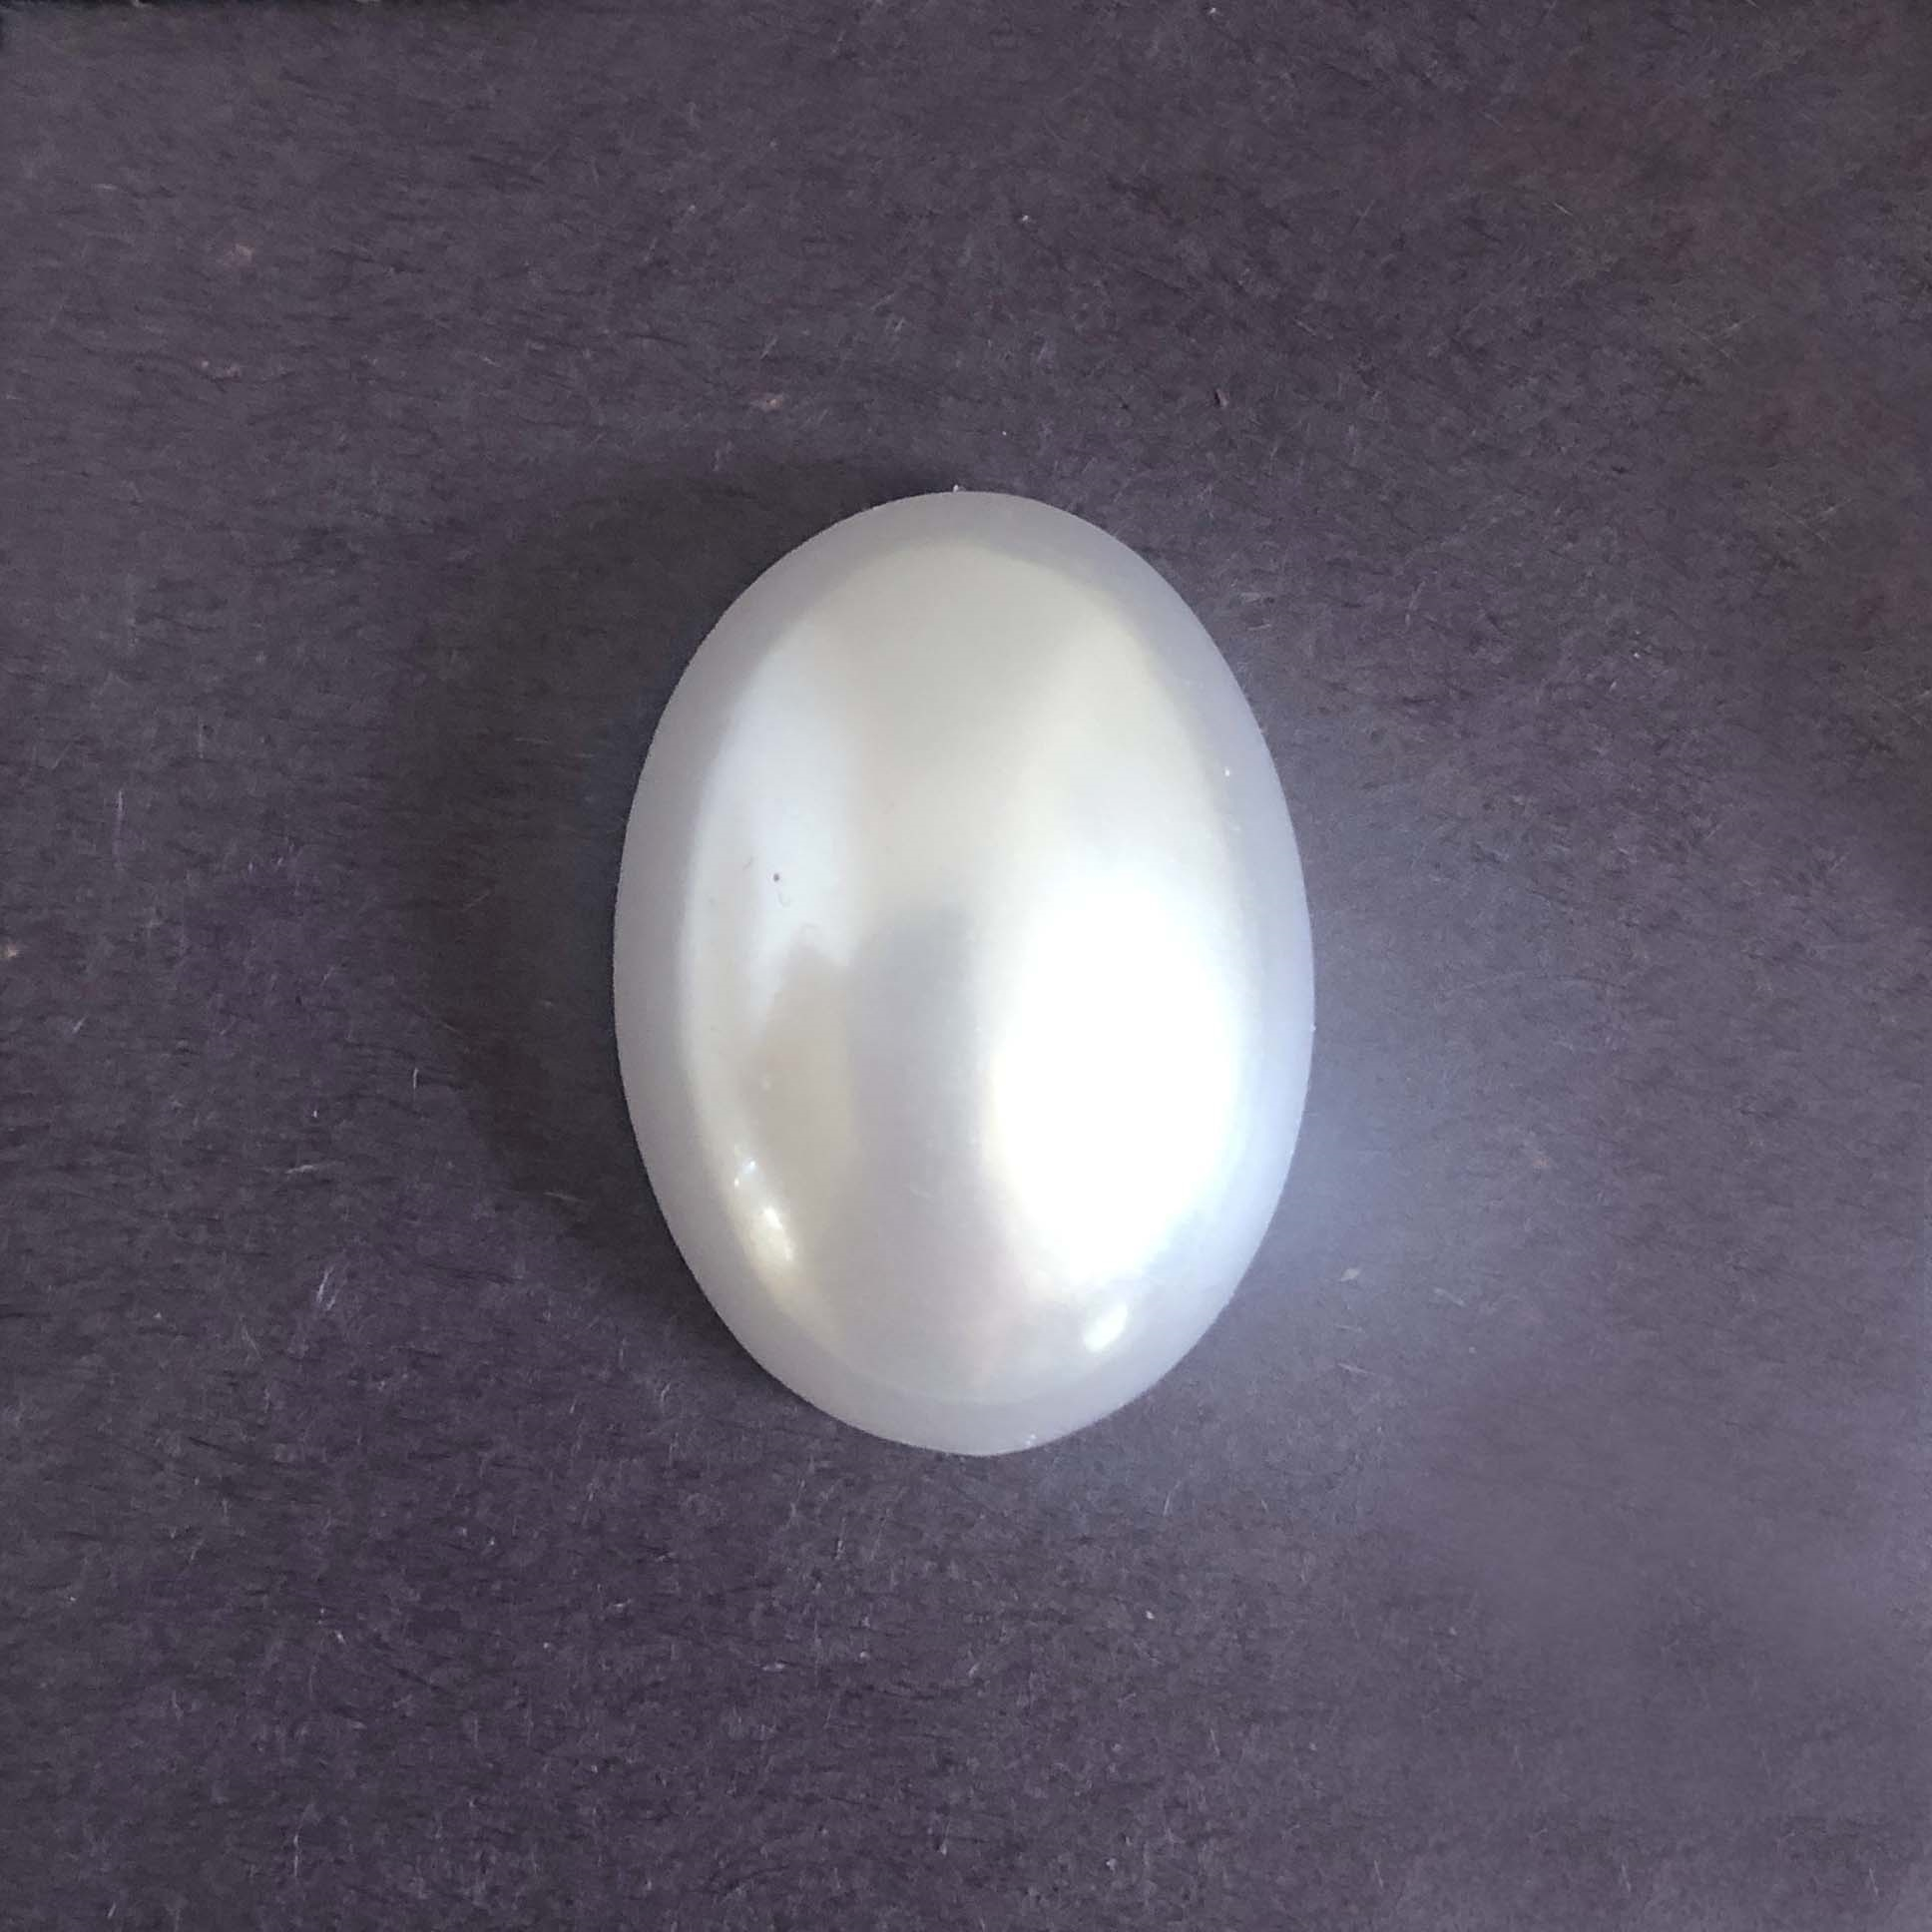 cameo, cabochon, plastic, imitation pearl, 25x18mm, 07569, jewelry making, vintage jewelry supplies, B'sue Boutiques, nickel free, US made, cameo jewelry, white cameos, pearl cabochons